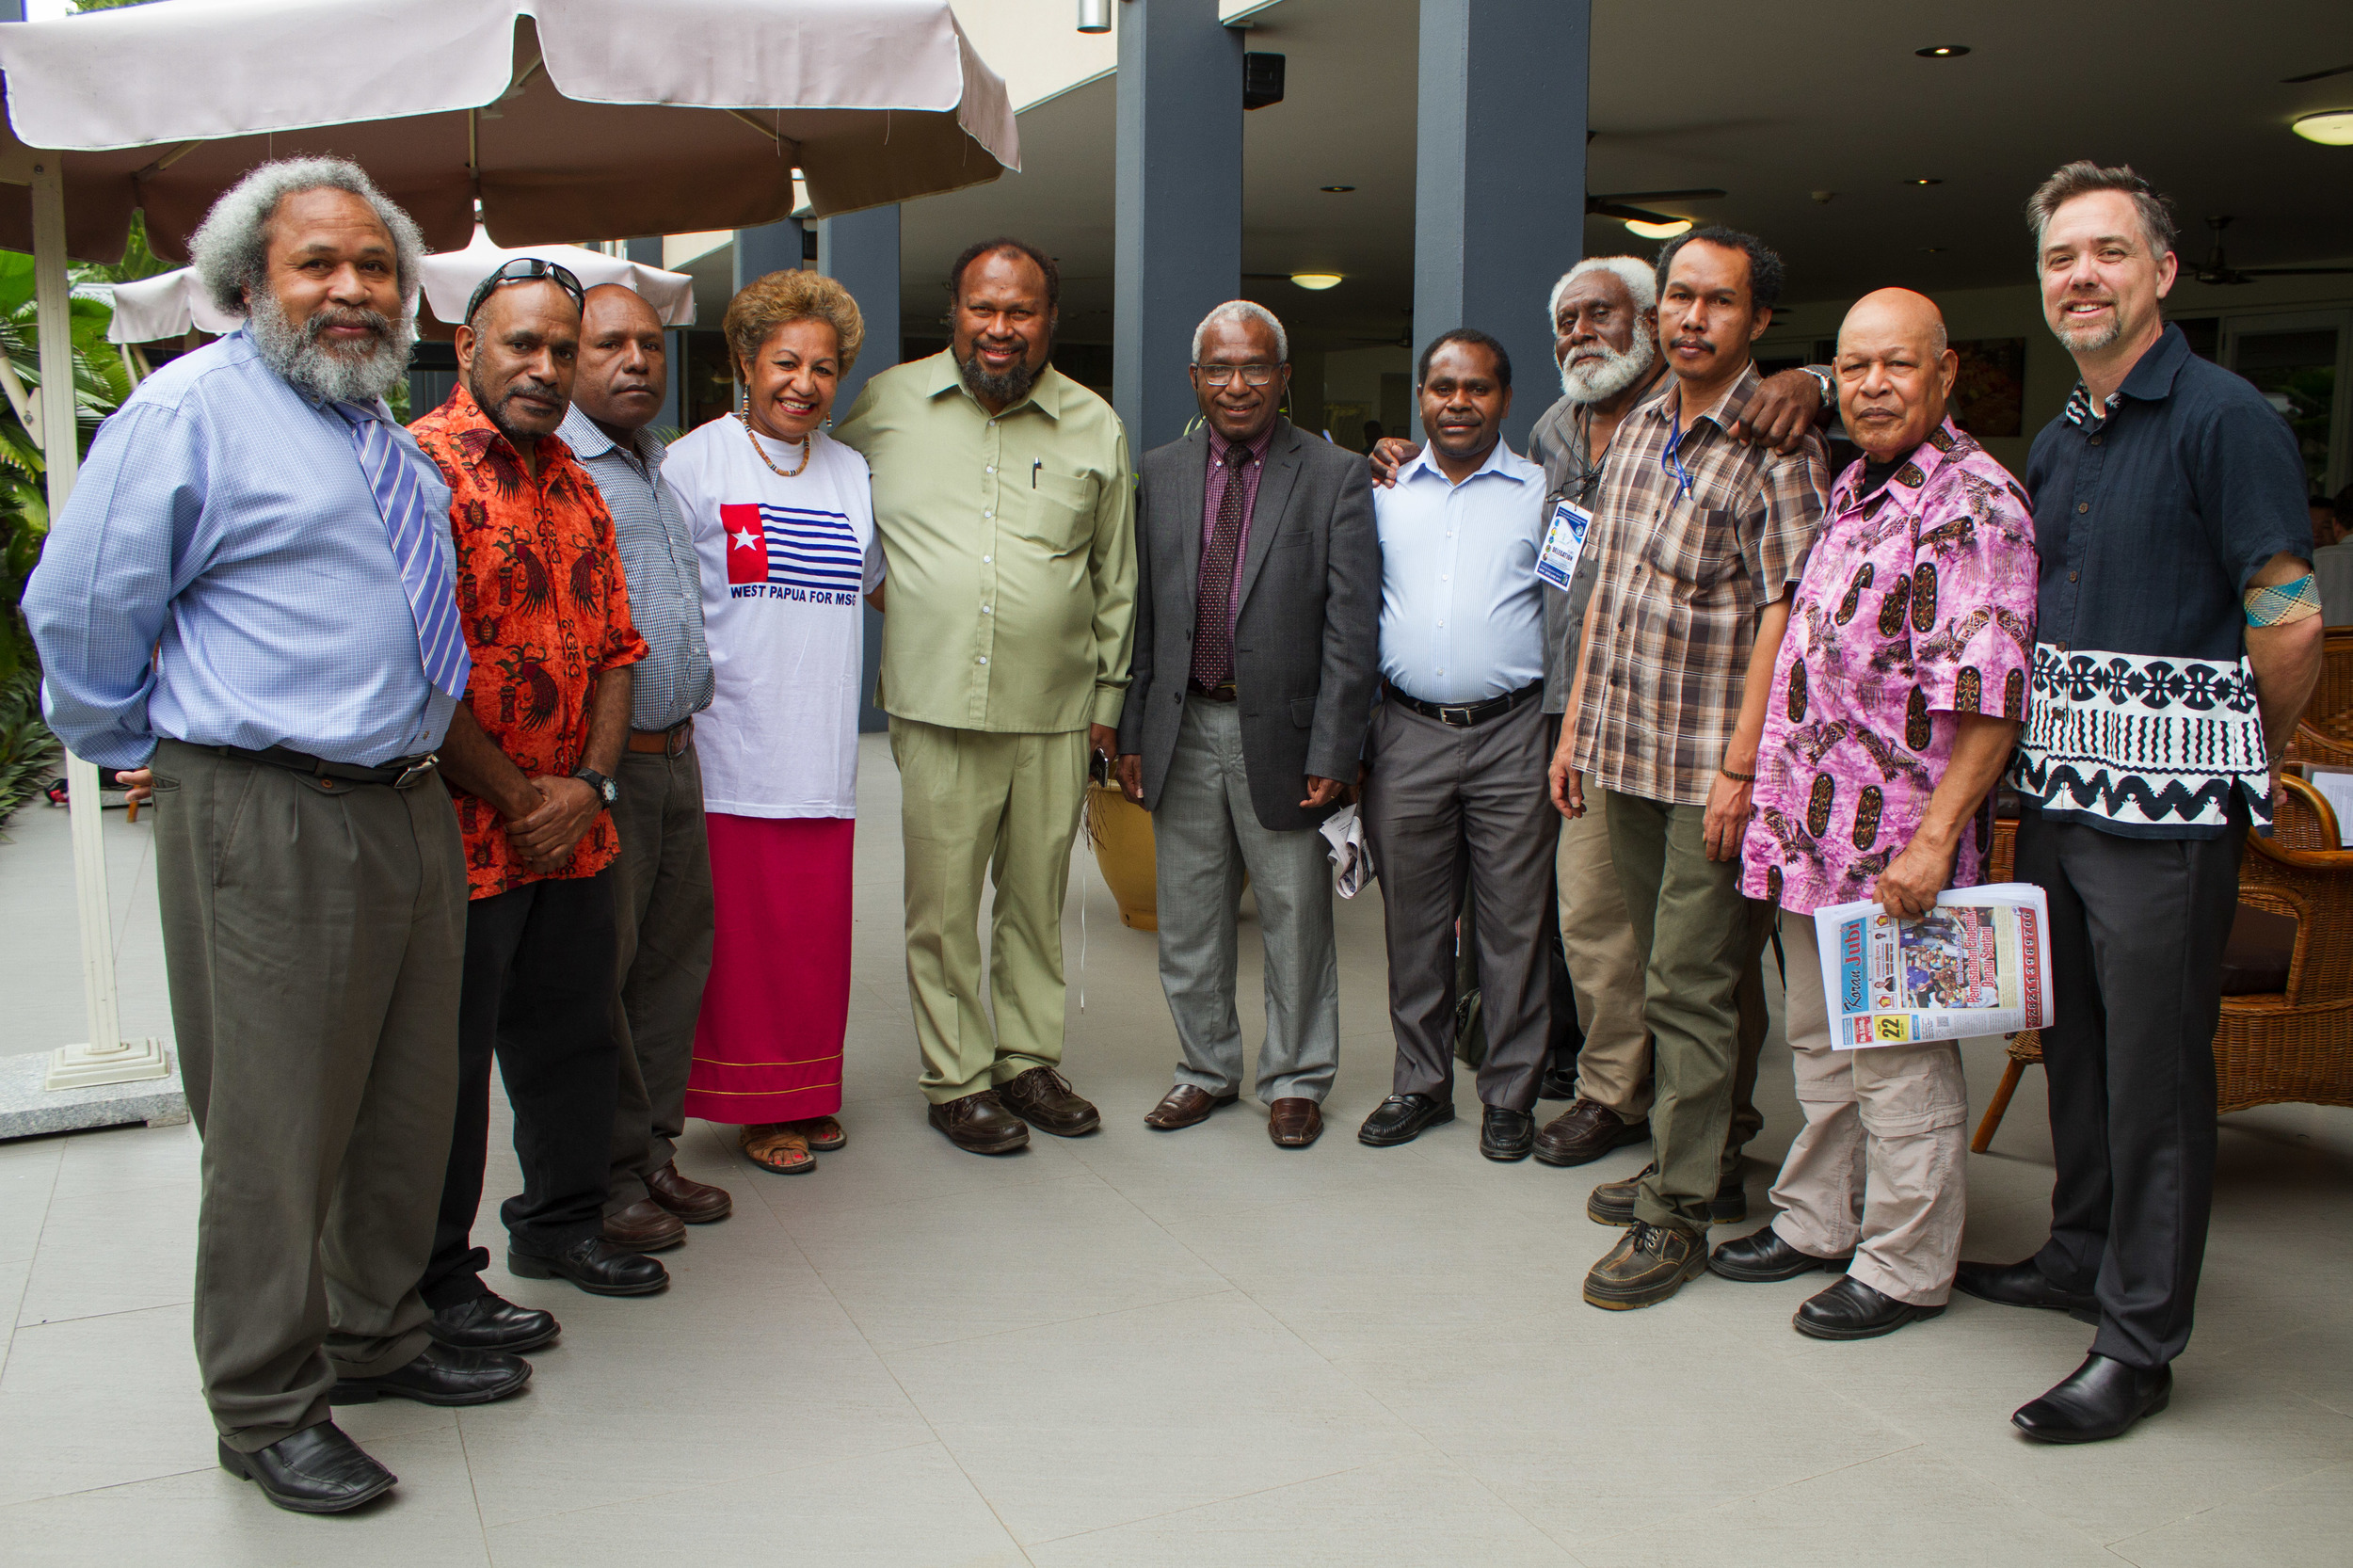 Pray For West Papua - West Papuan leaders and their supporters at the Melanesian Spearhead Group meeting in Honiara, 2015.